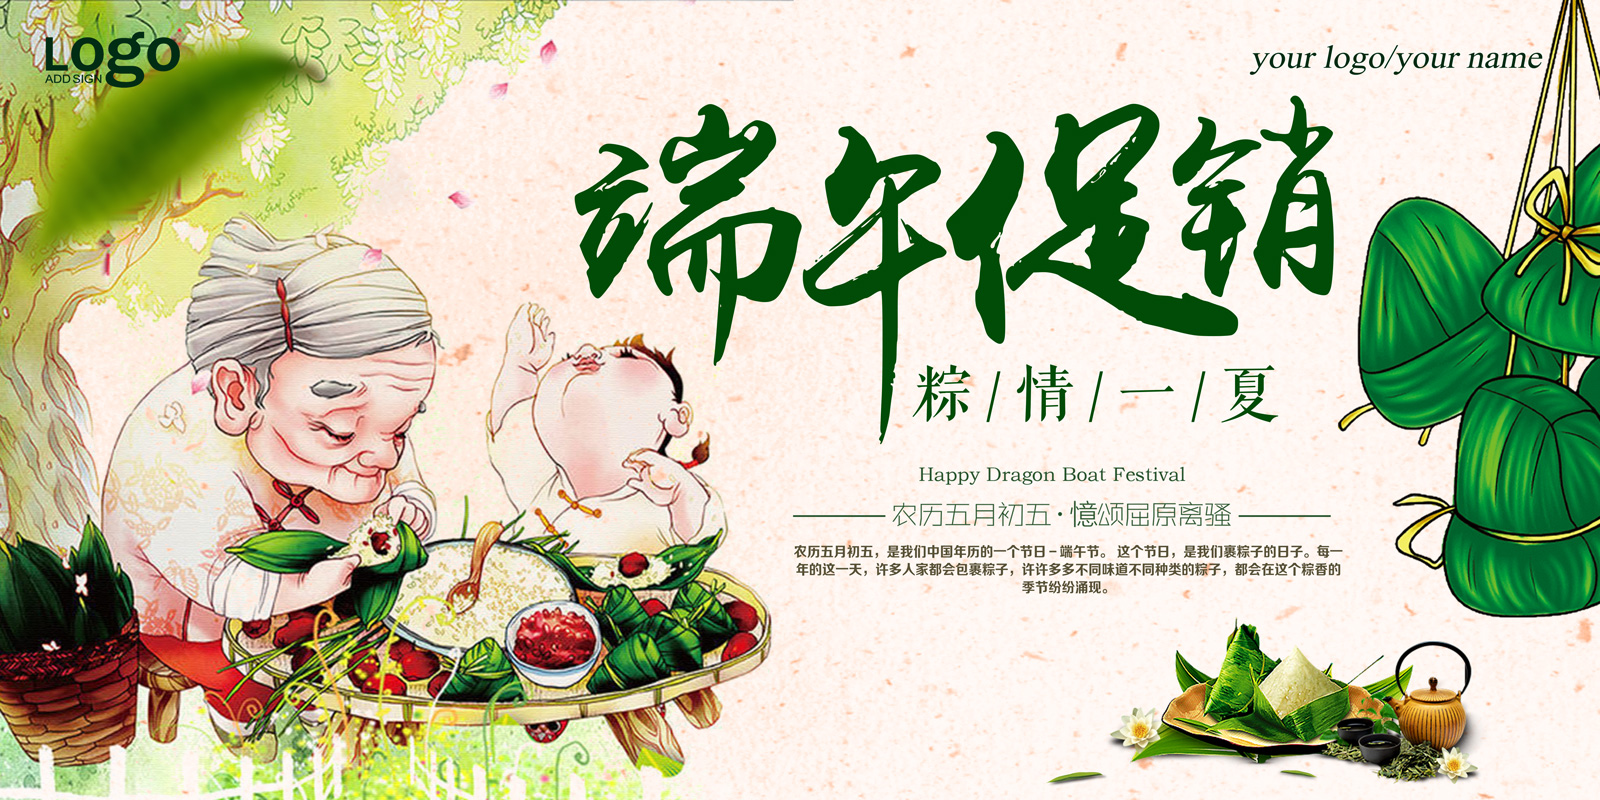 Eating zongzi on Dragon Boat Festival China PSD File Free Download